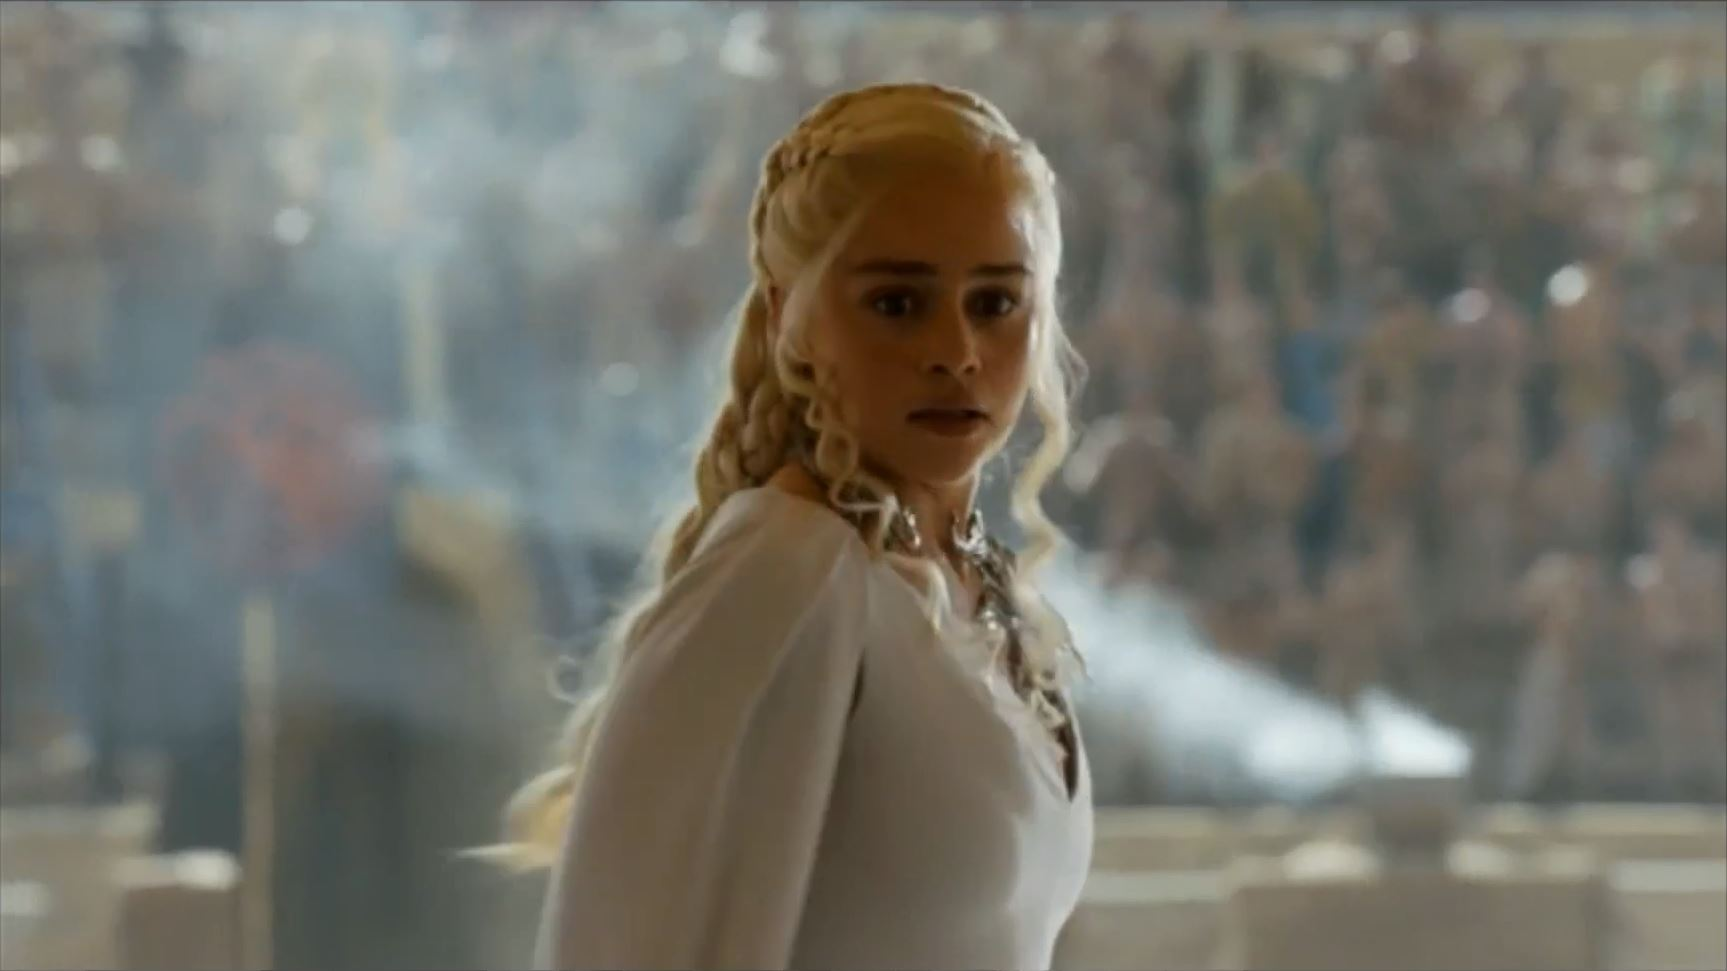 Game of Thrones Season 5 Trailer 2. Emilia Clarke as Queen Daenerys Targaryen